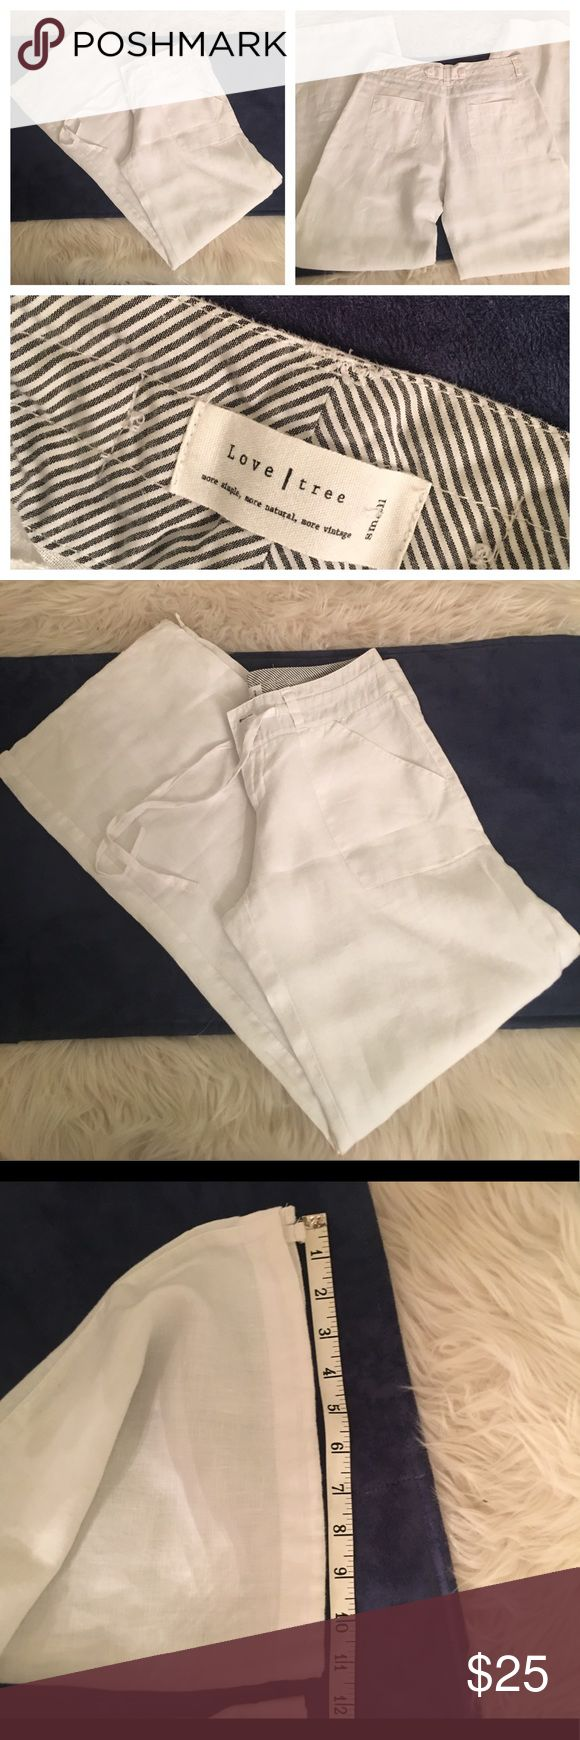 "Love Tree 100% linen wide leg trouser NWOT Love Tree 100% linen wide leg pants. Perfect condition. Bright white. Lightweight. 11"" leg opening. 31.5"" inseam. Drawstring at leg opening. 9"" rise Love Tree Pants Wide Leg"